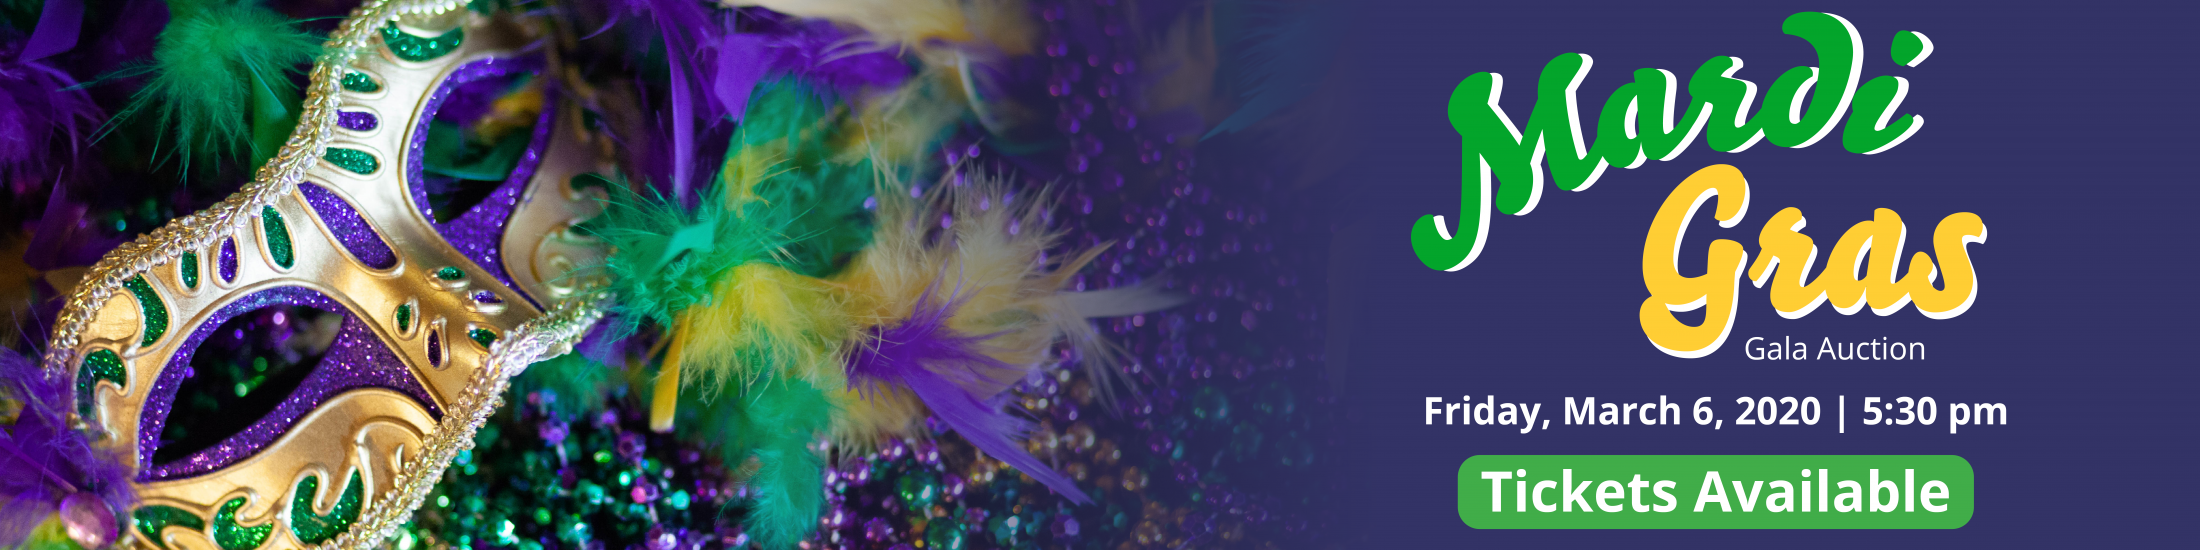 Mardi Gras 2020 - purchase tickets